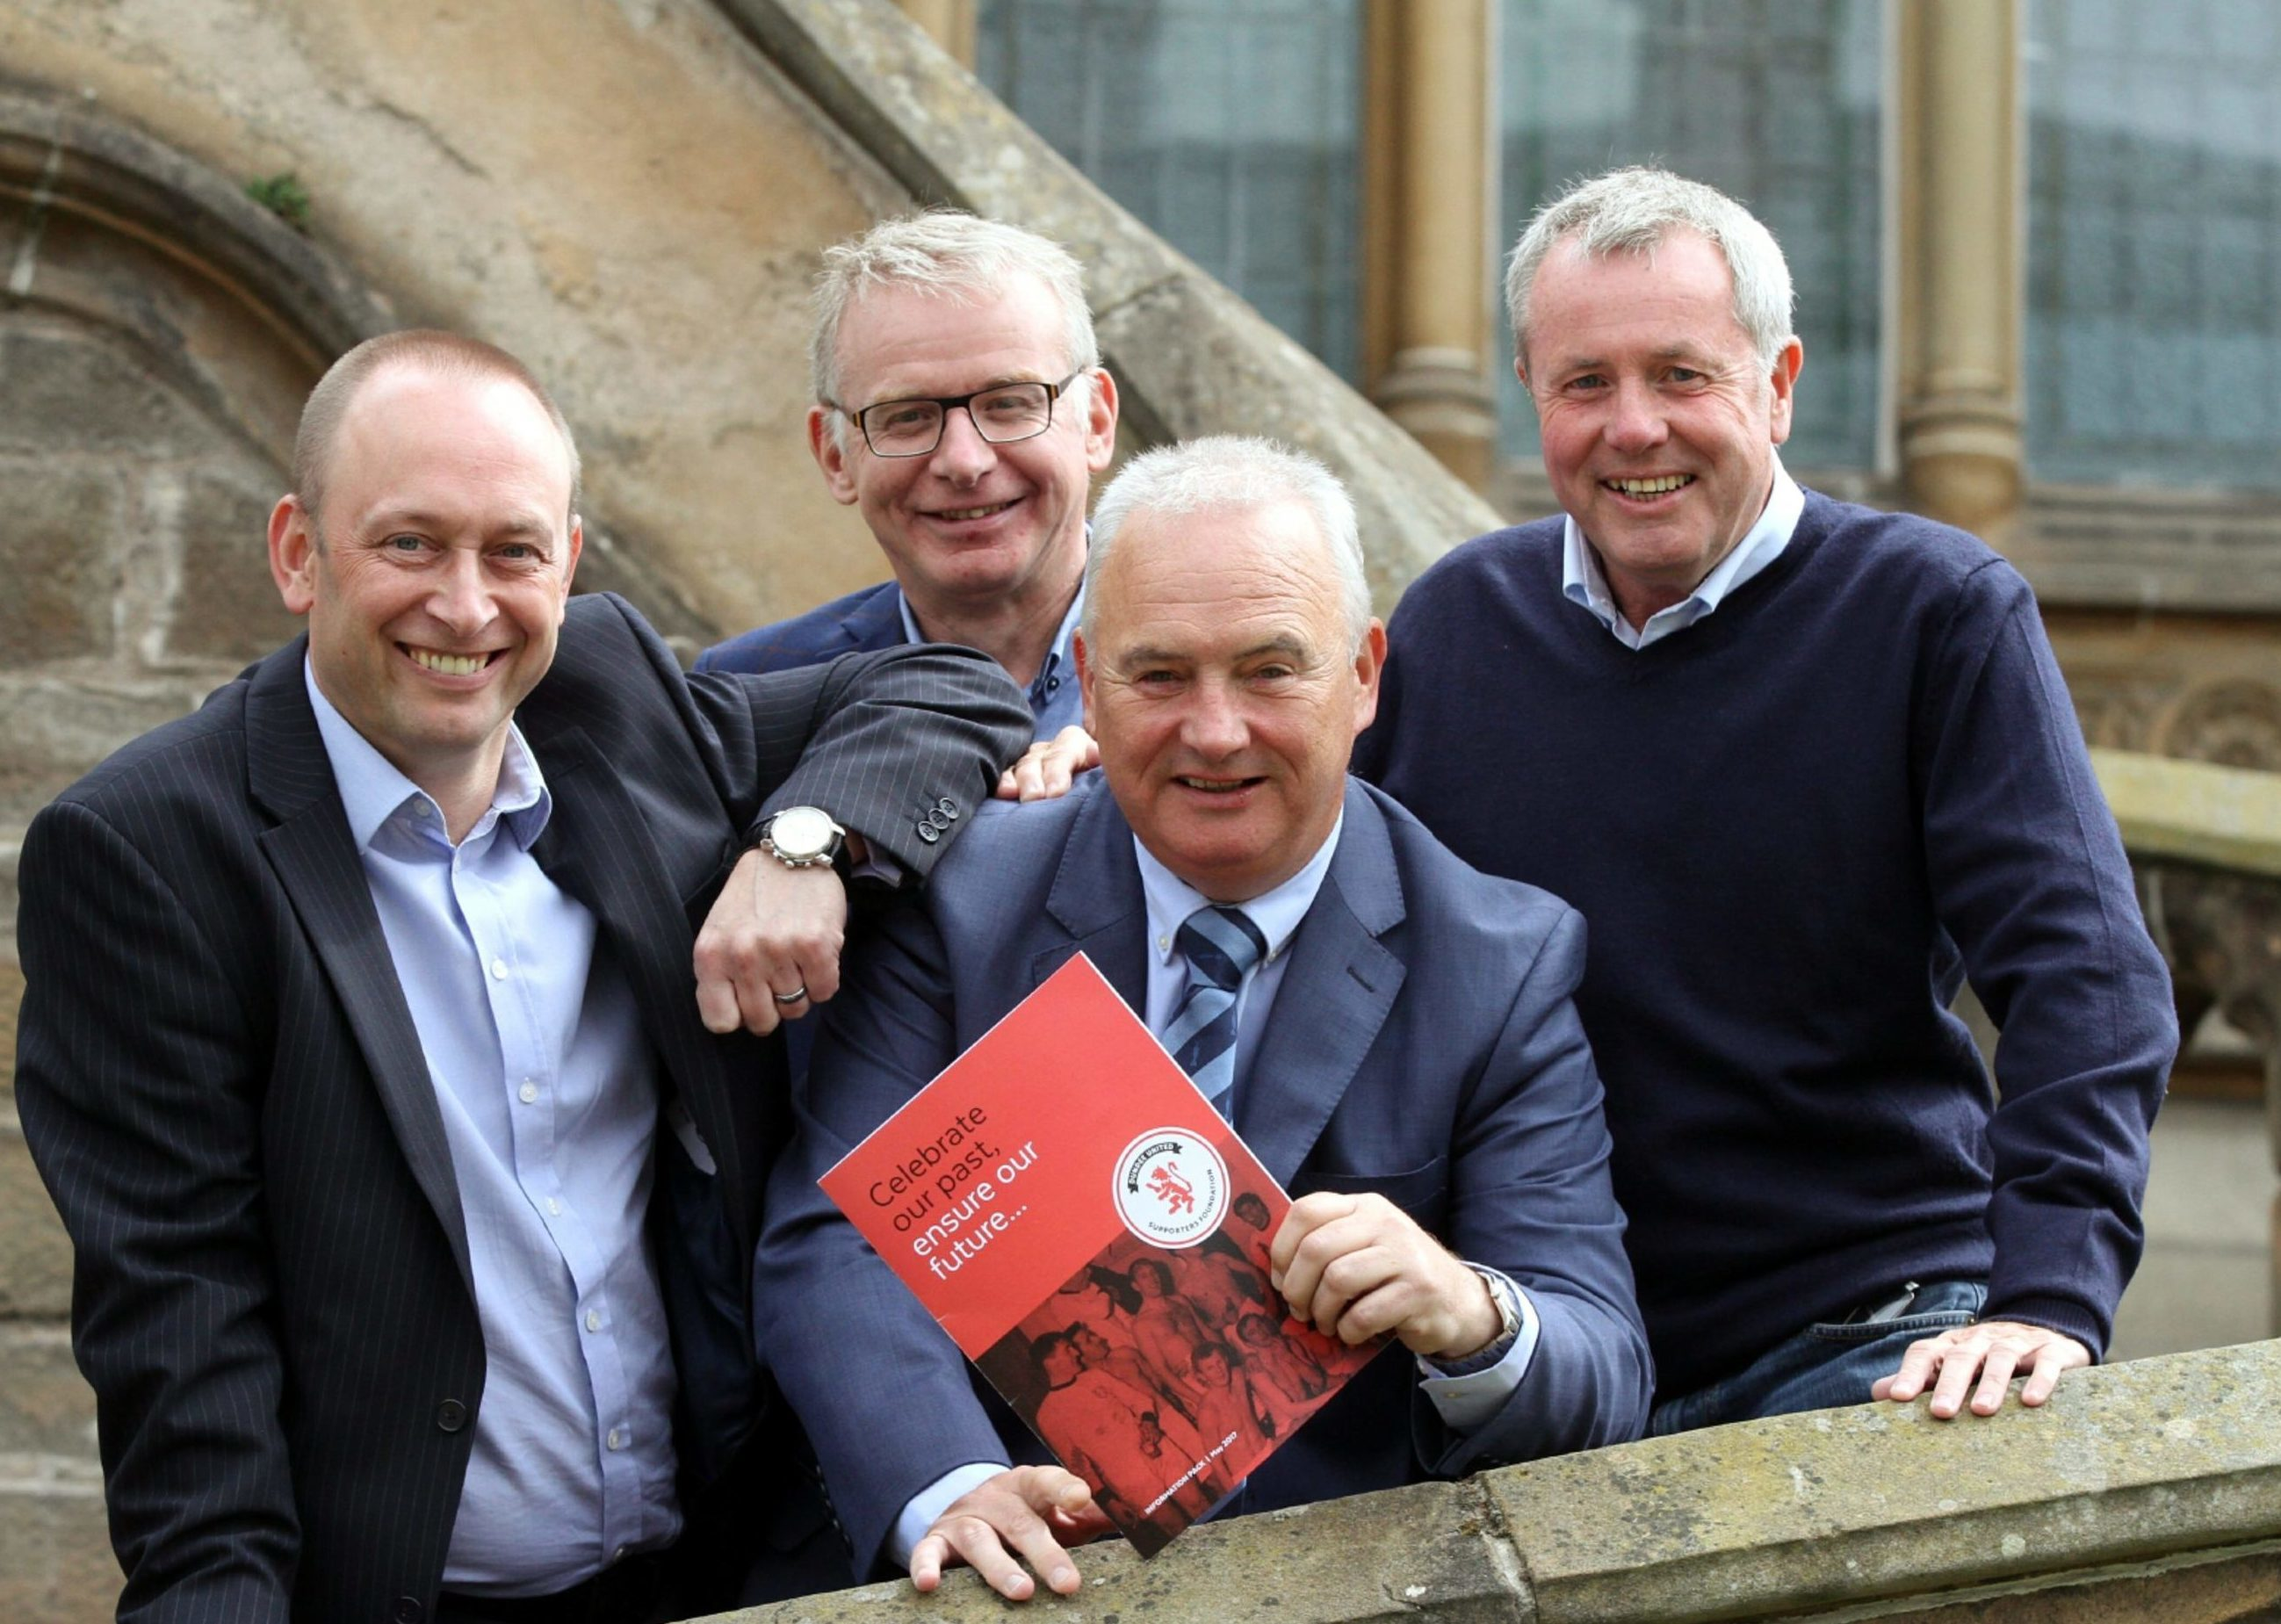 DUSF founders Graham McLelland, Martin Manzi, John Gibson and Mike Evans.